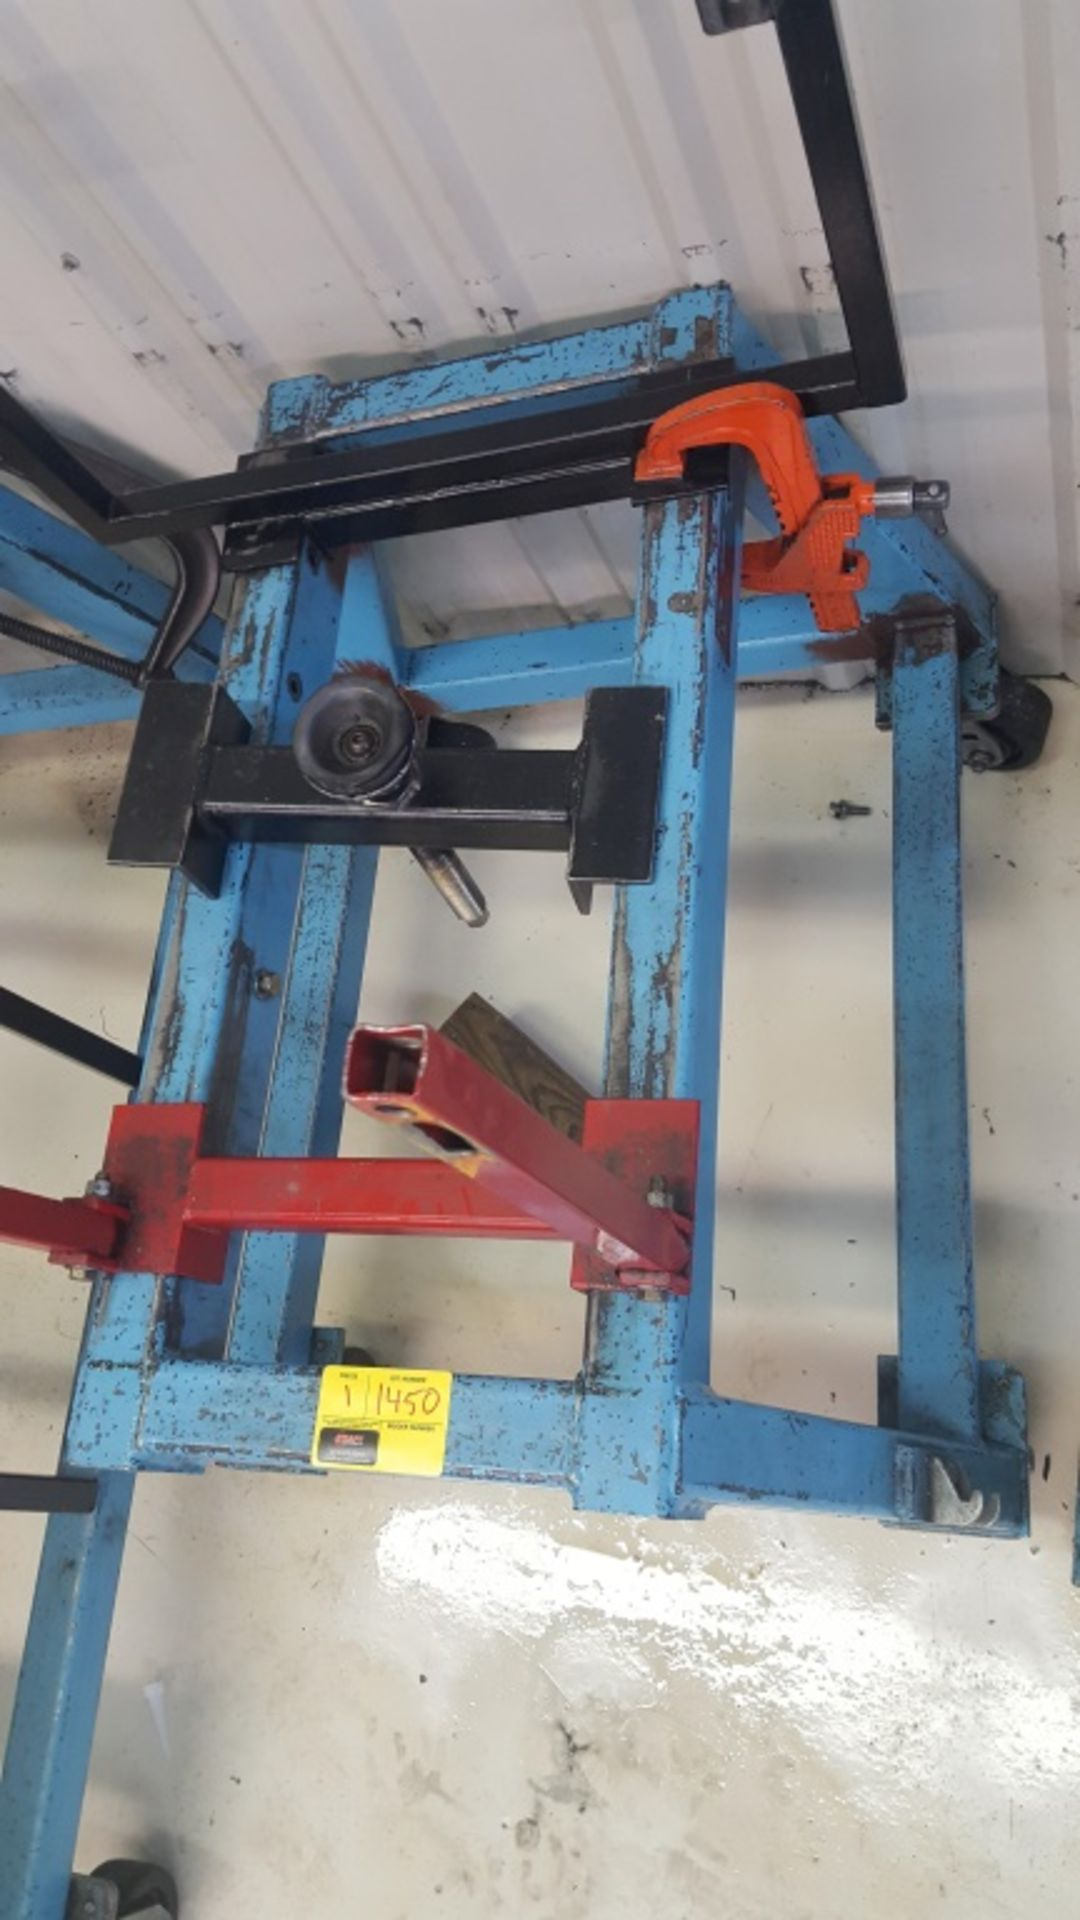 Lot 1450 - Blue Engine Stand w/Red Attachment